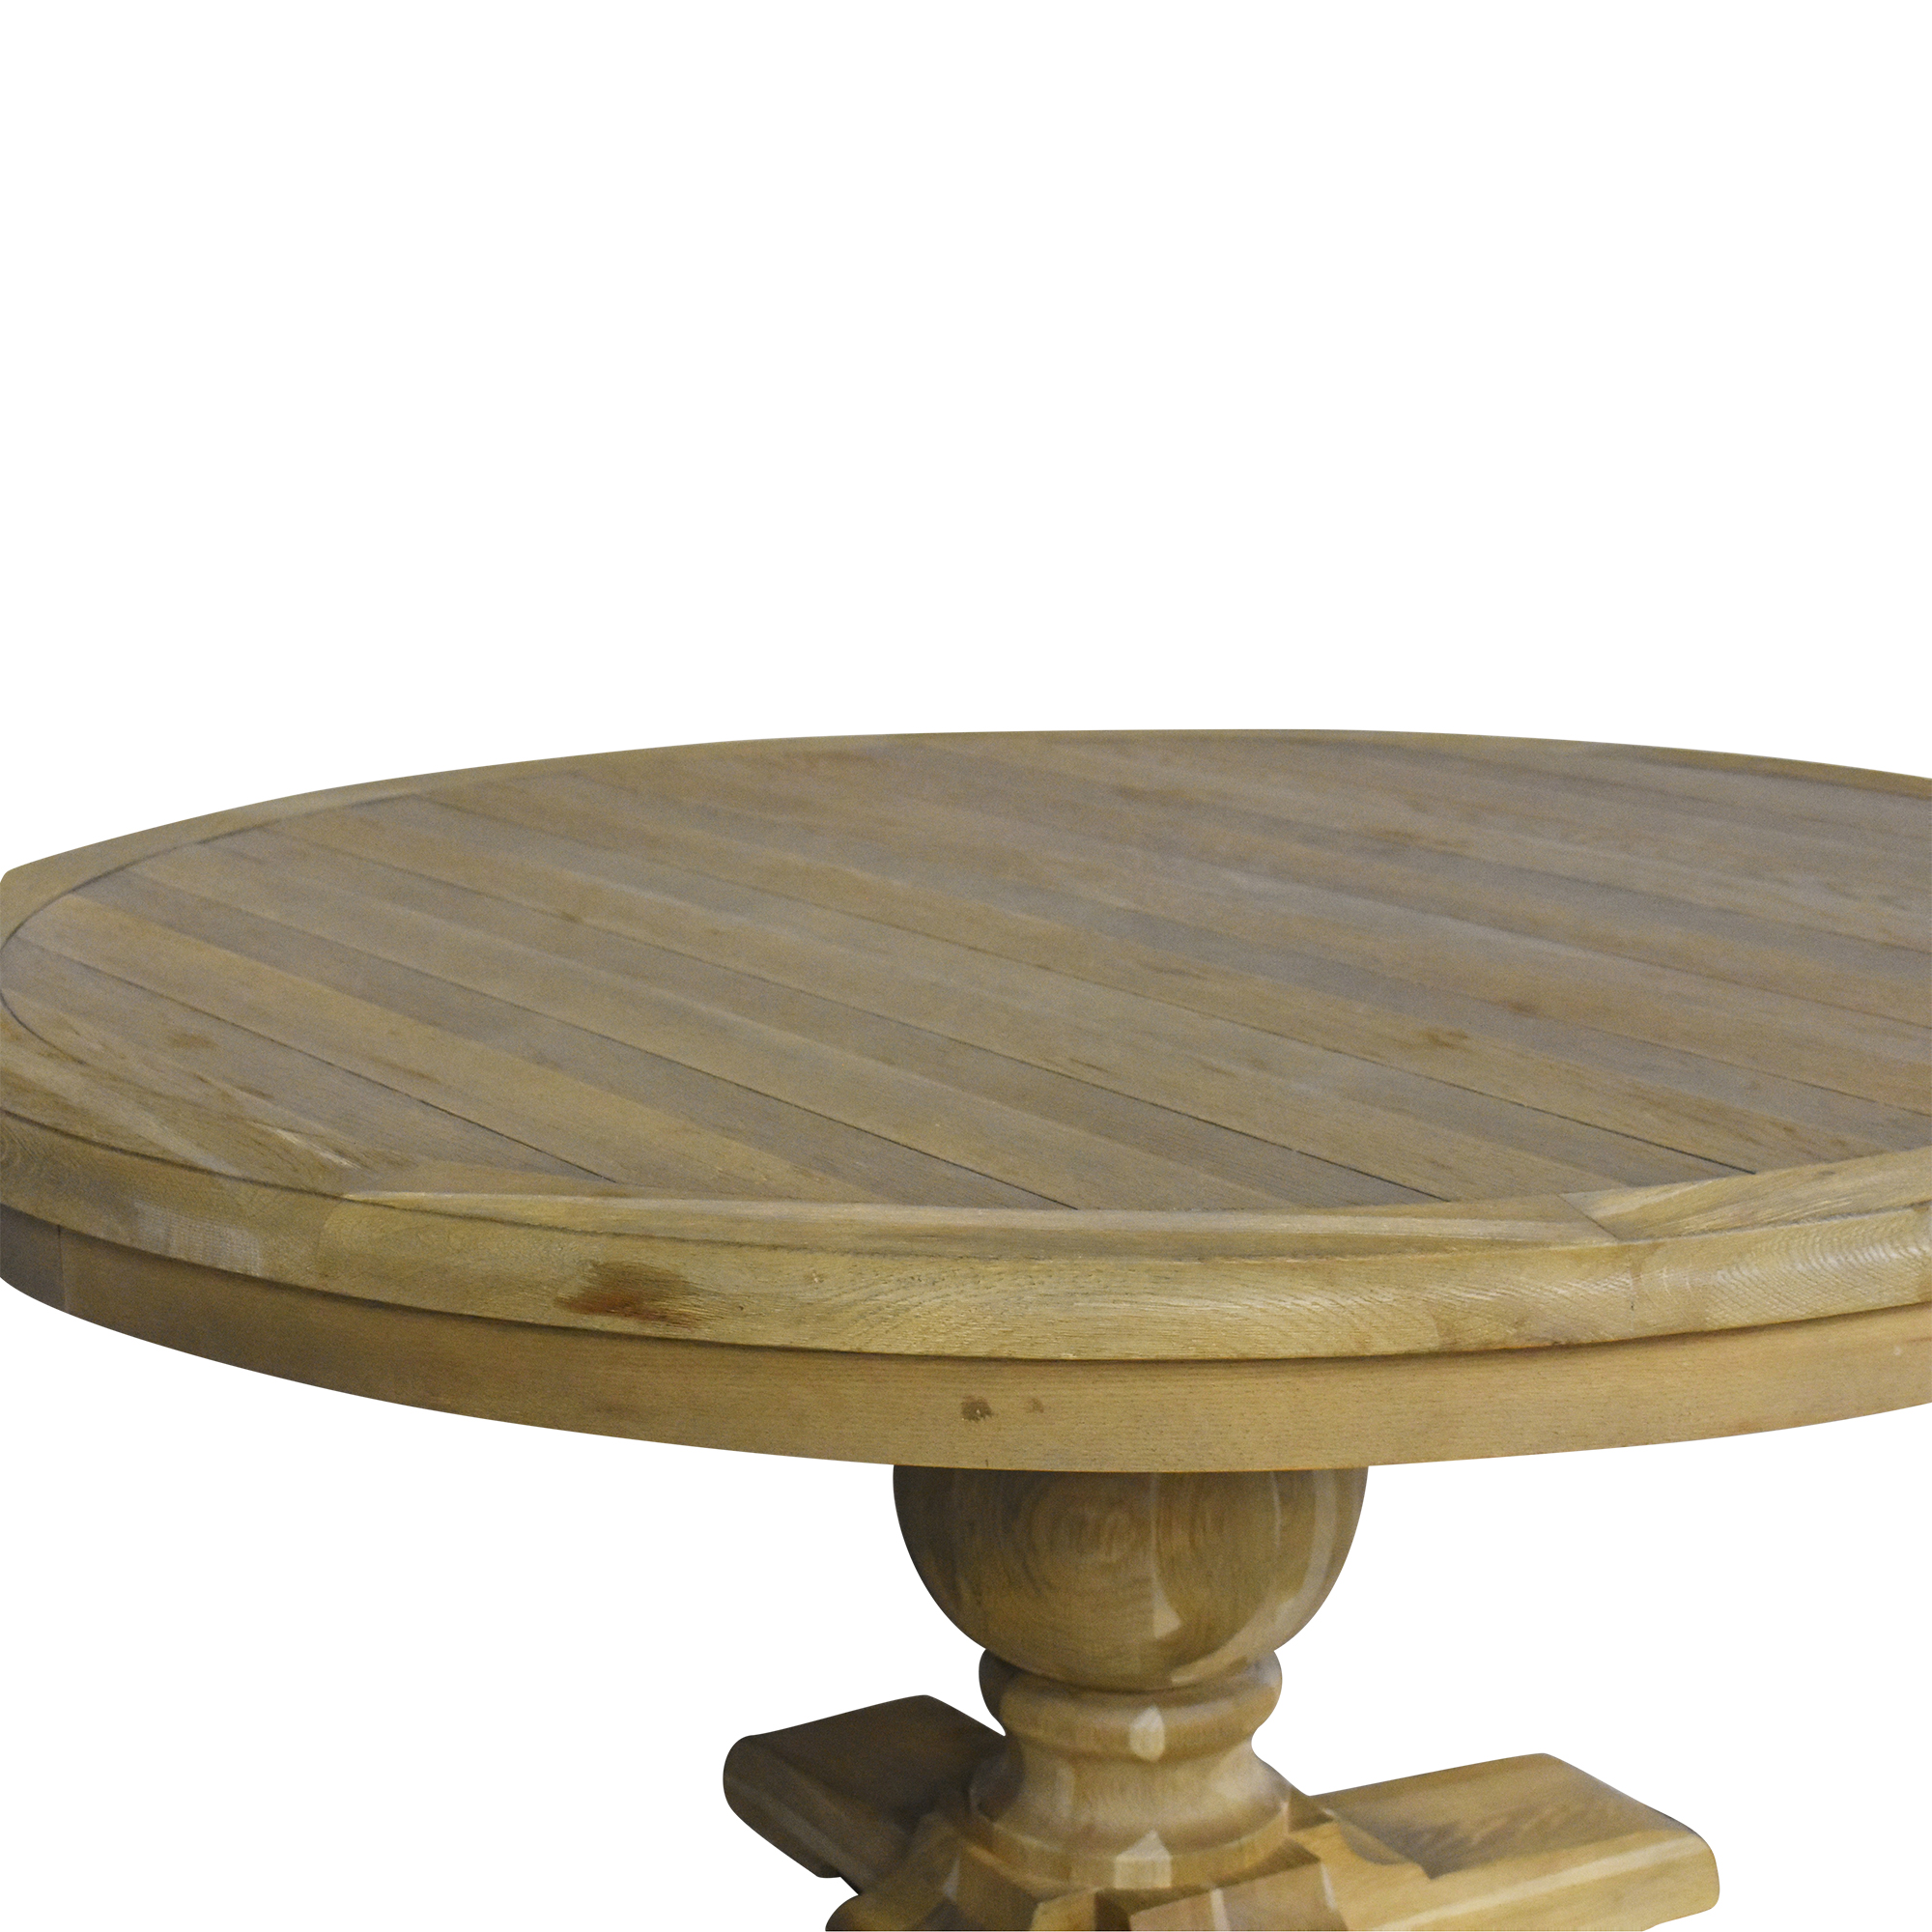 Zin Home Zin Home Kingdom Round Pedestal Dining Table second hand